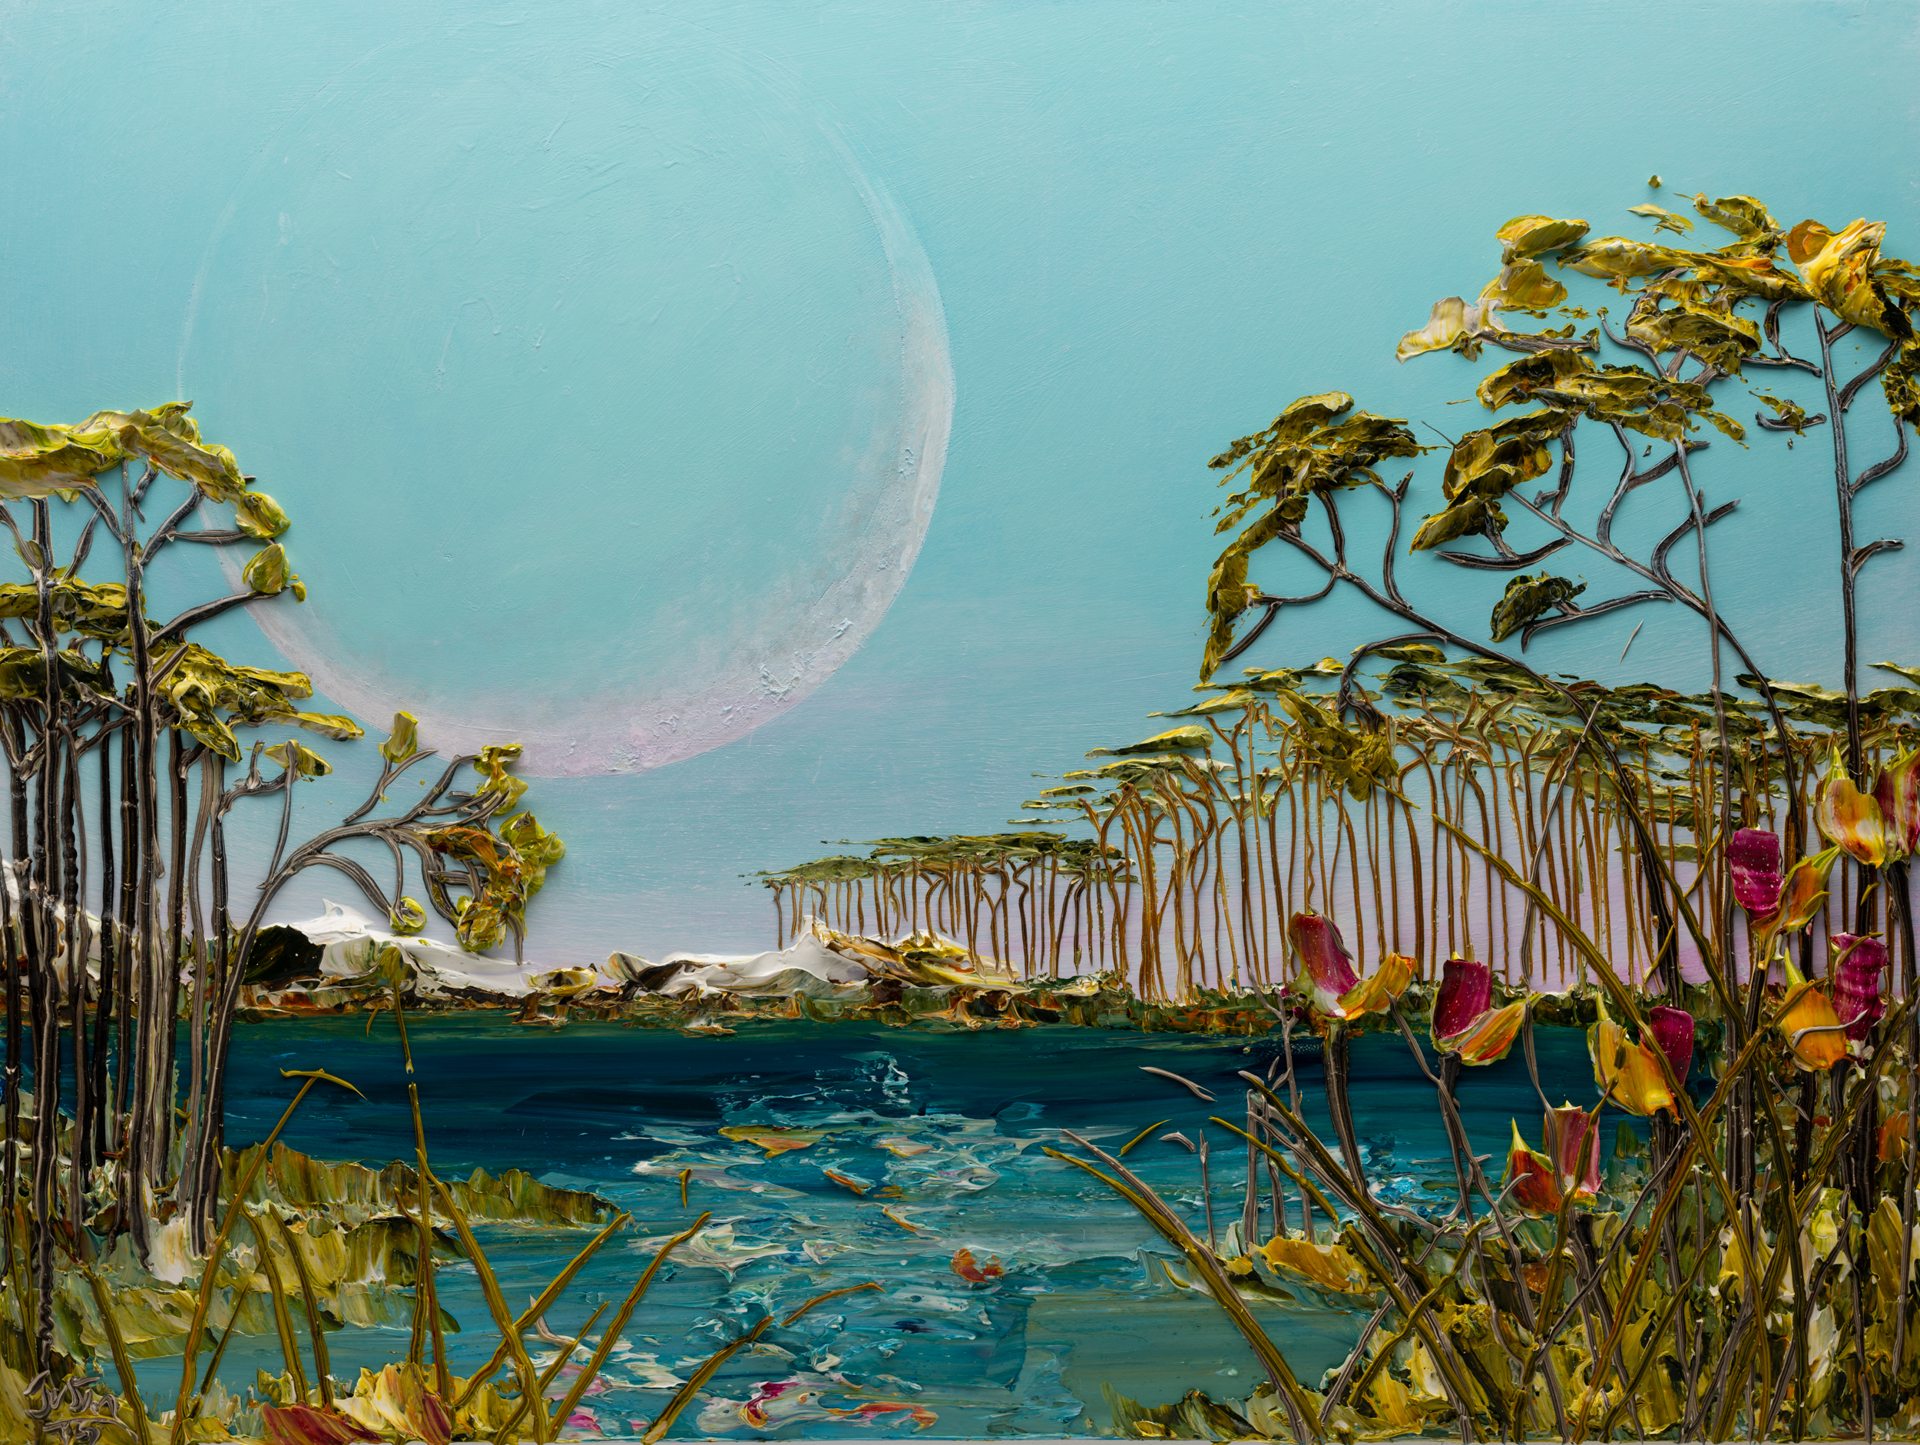 (SOLD) SUNRISE MOONSCAPE-MS-48x36-2019-225 by JUSTIN GAFFREY